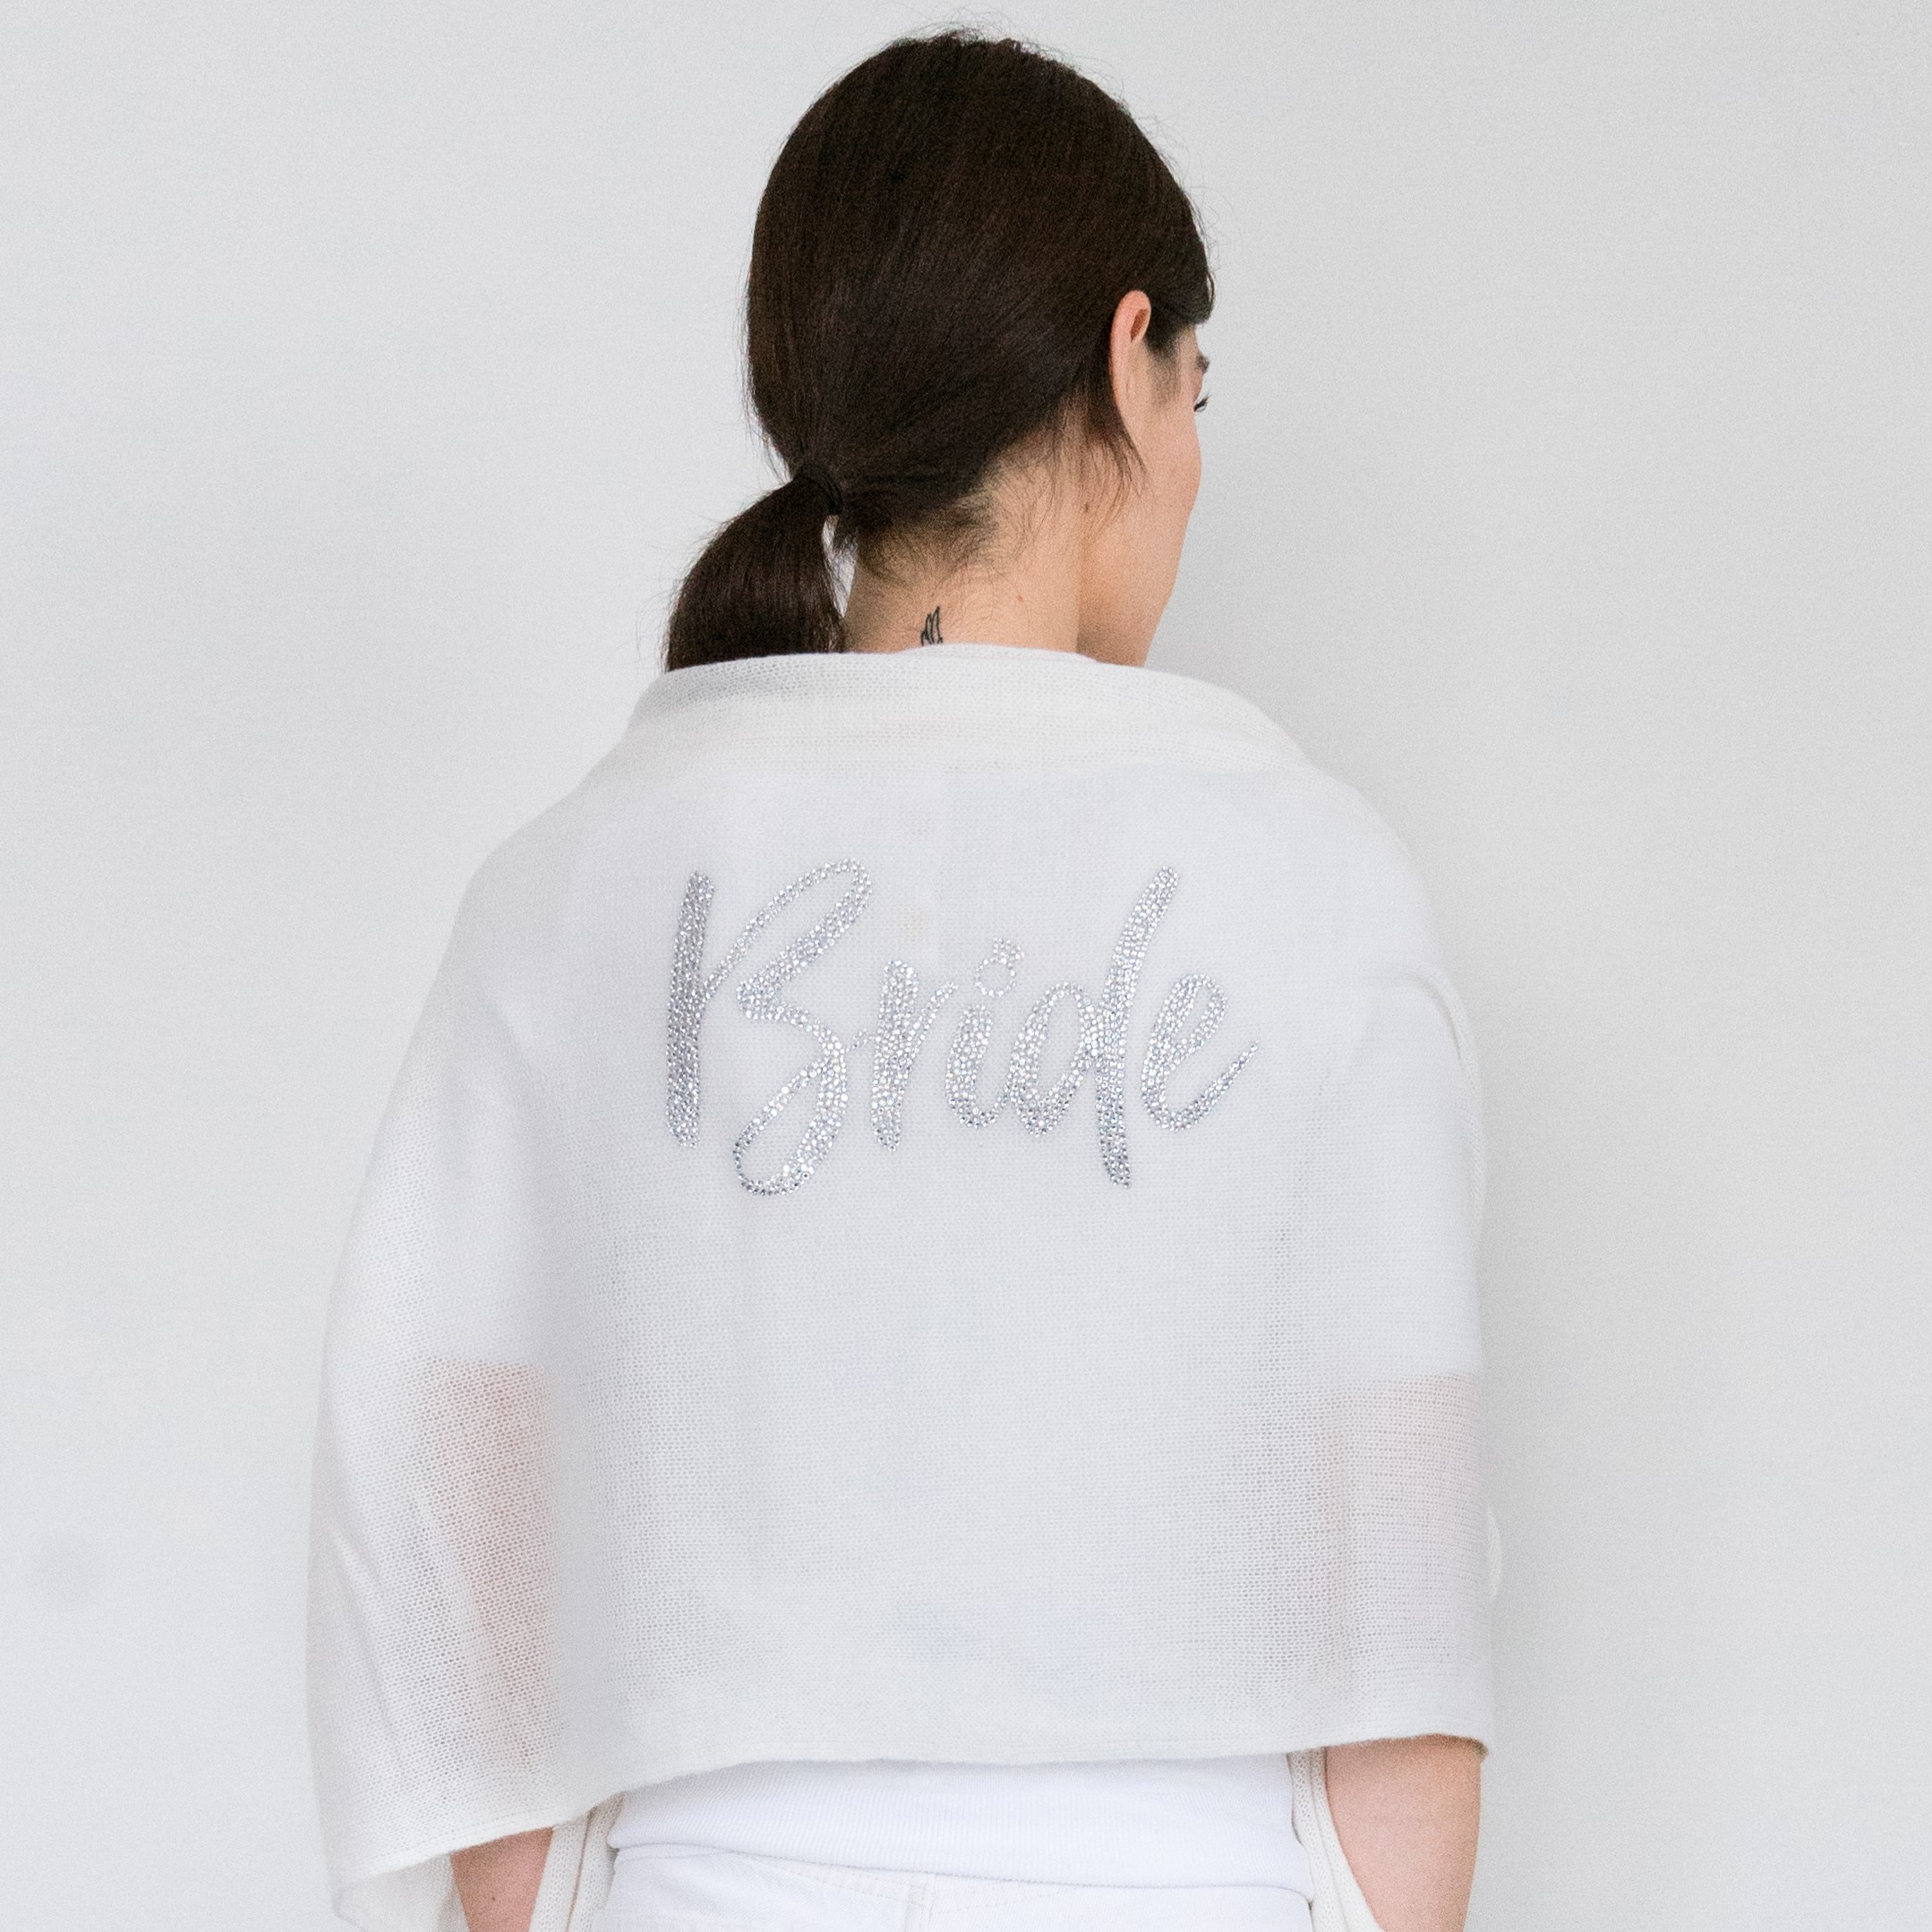 - Crystal Bride Applique on Bleached White Cashmere